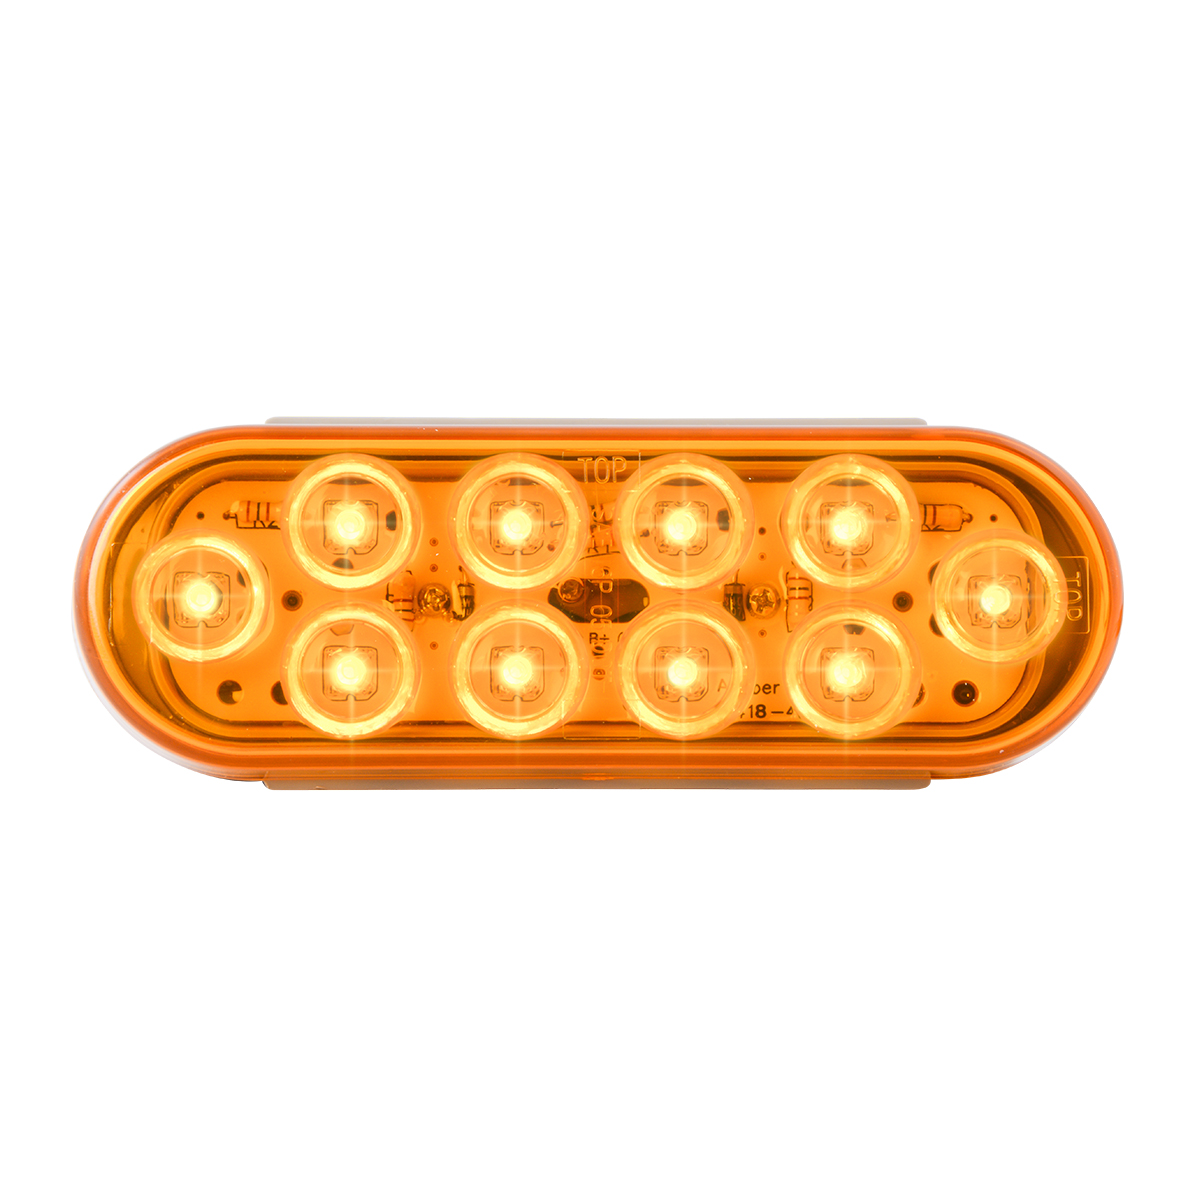 77440 Oval Mega 10 LED Light in Amber/Amber